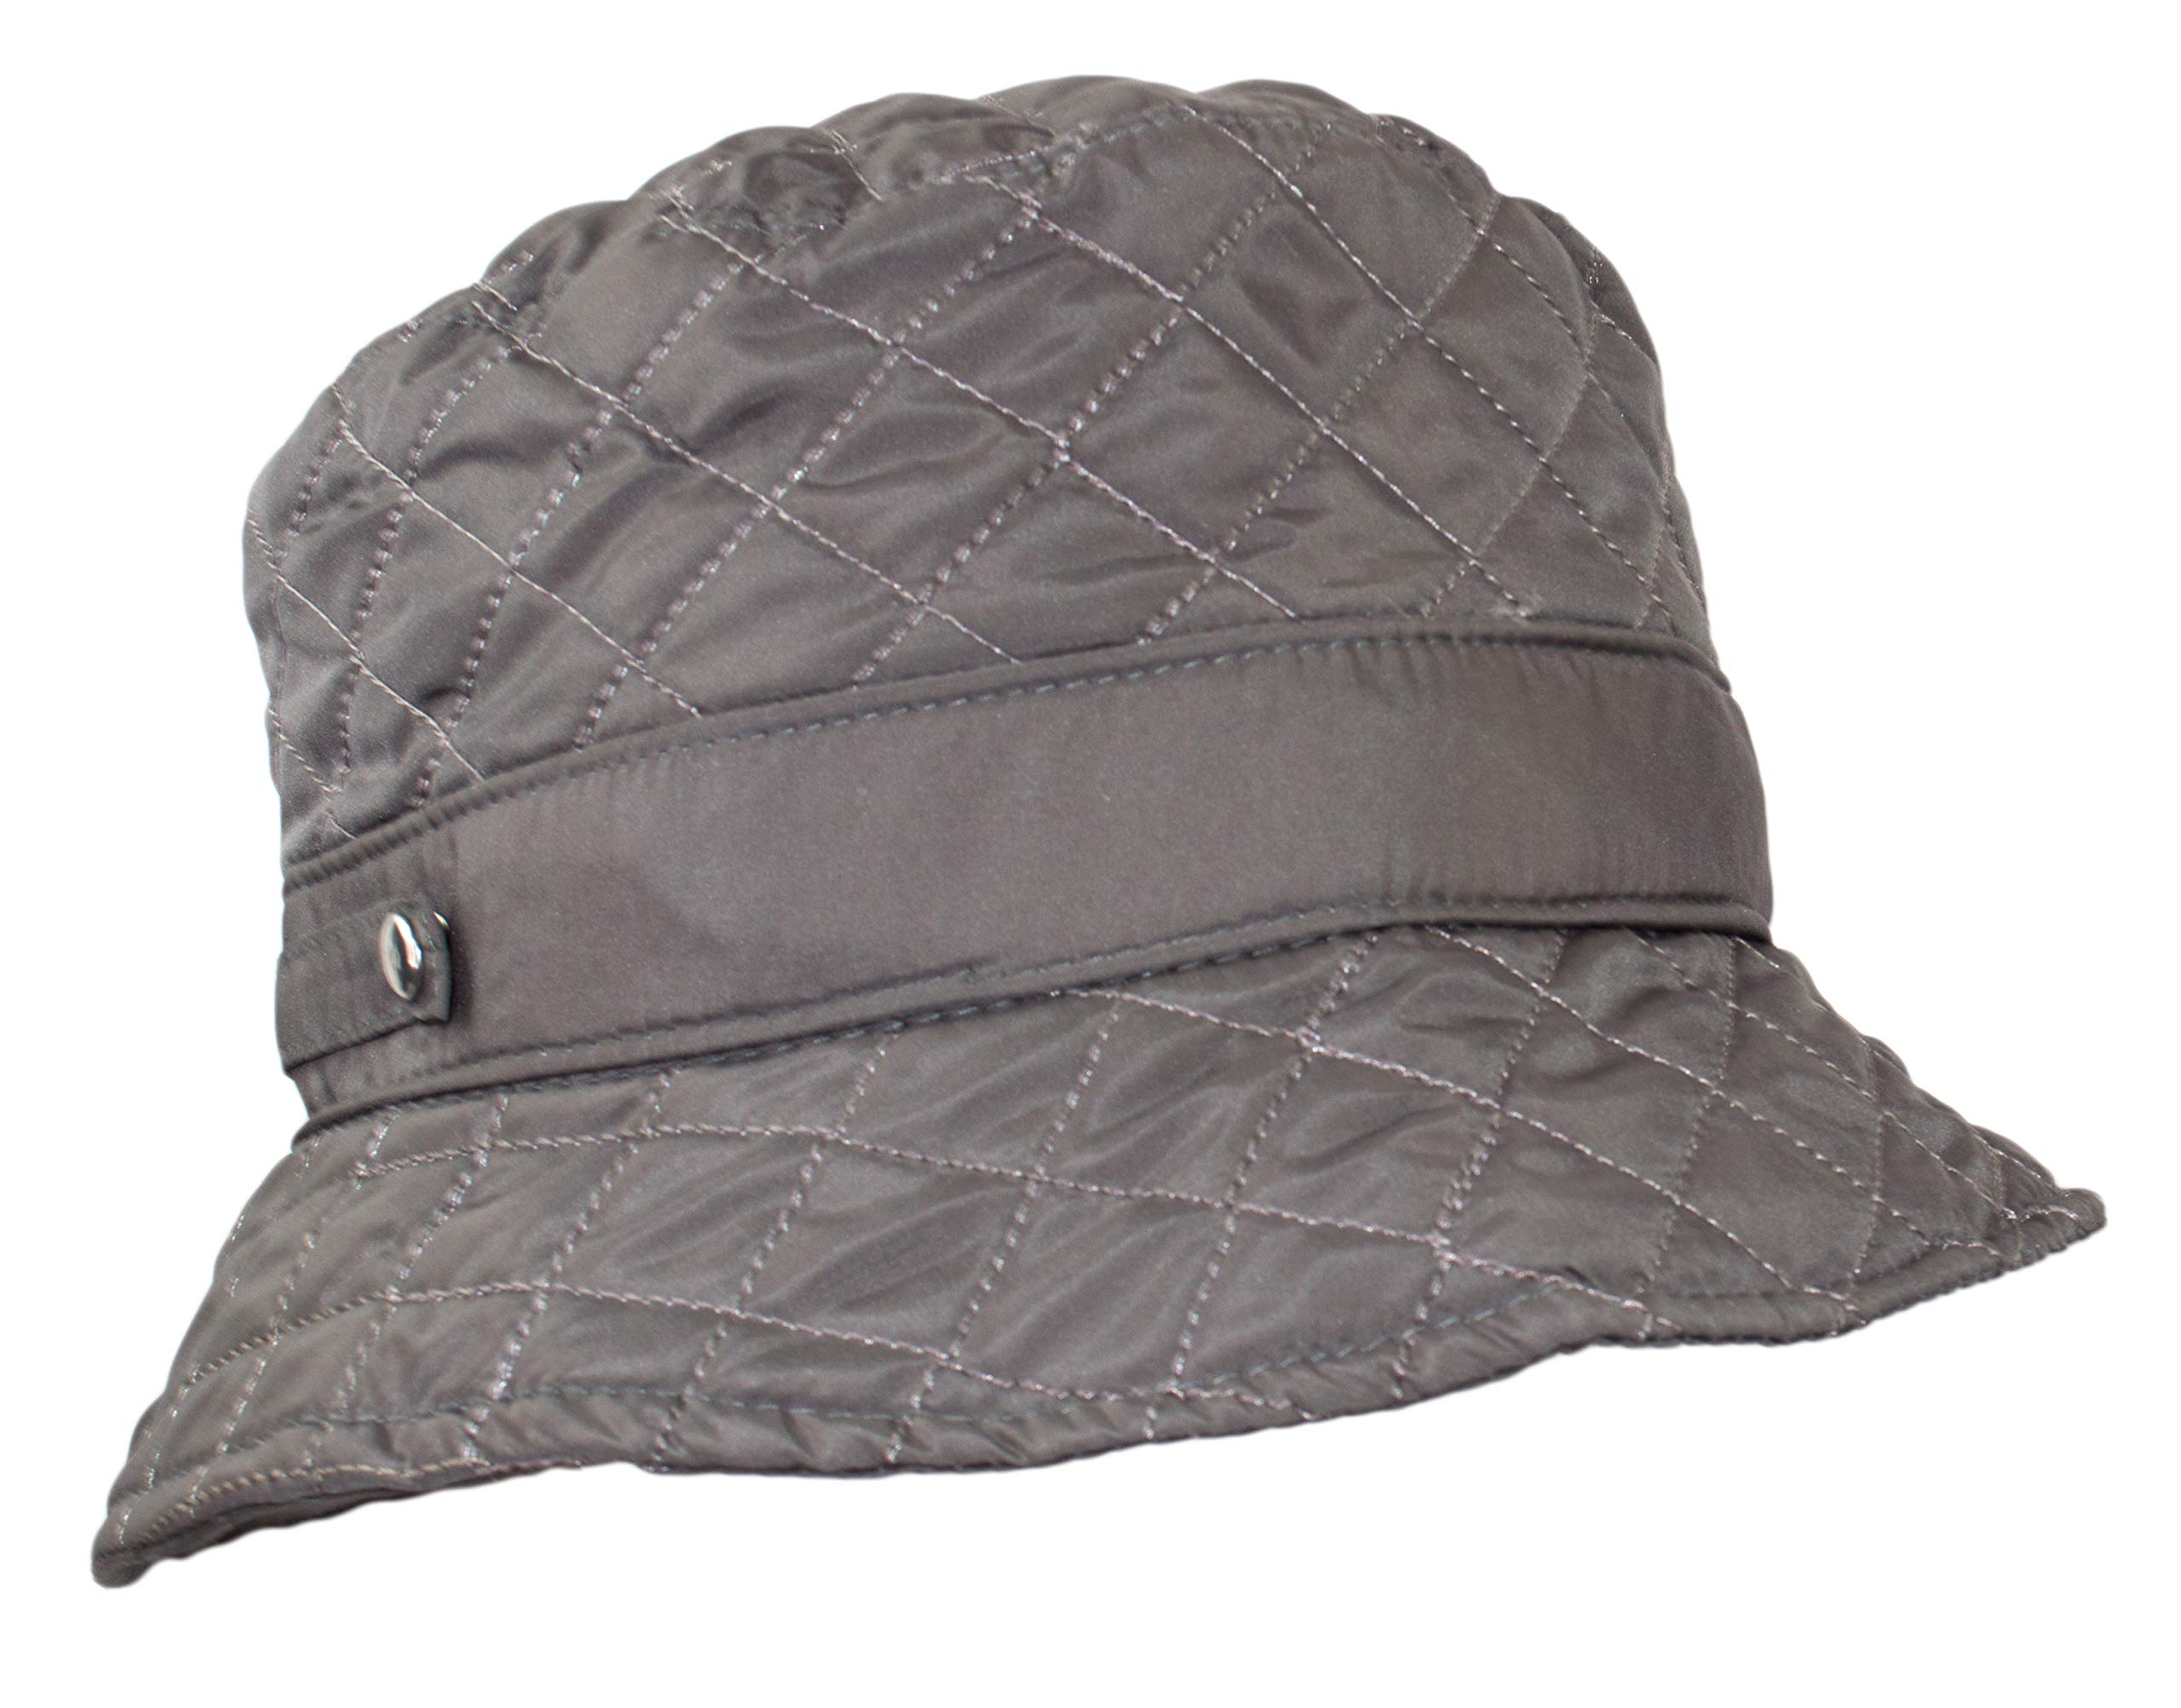 Cute Quilted Accent Bucket Rain Hat, Water Repellent Roll-Up Cap w/Fleece Lining (Grey) by HatQuarters